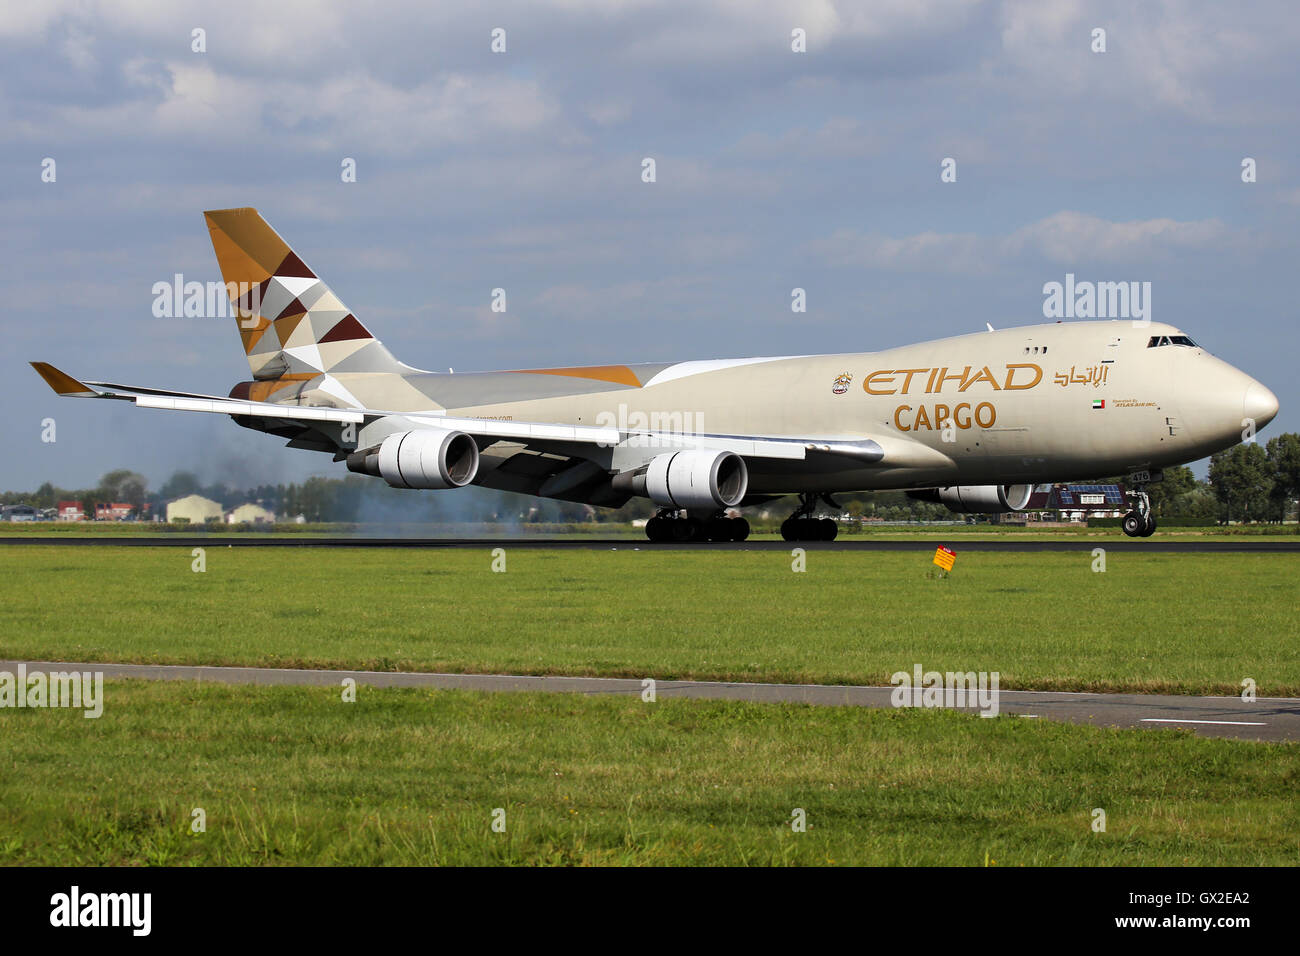 Etihad Airways (Atlas Air) Boeing 747-400 approaches  runway 18R at Amsterdam Schipol airport. - Stock Image